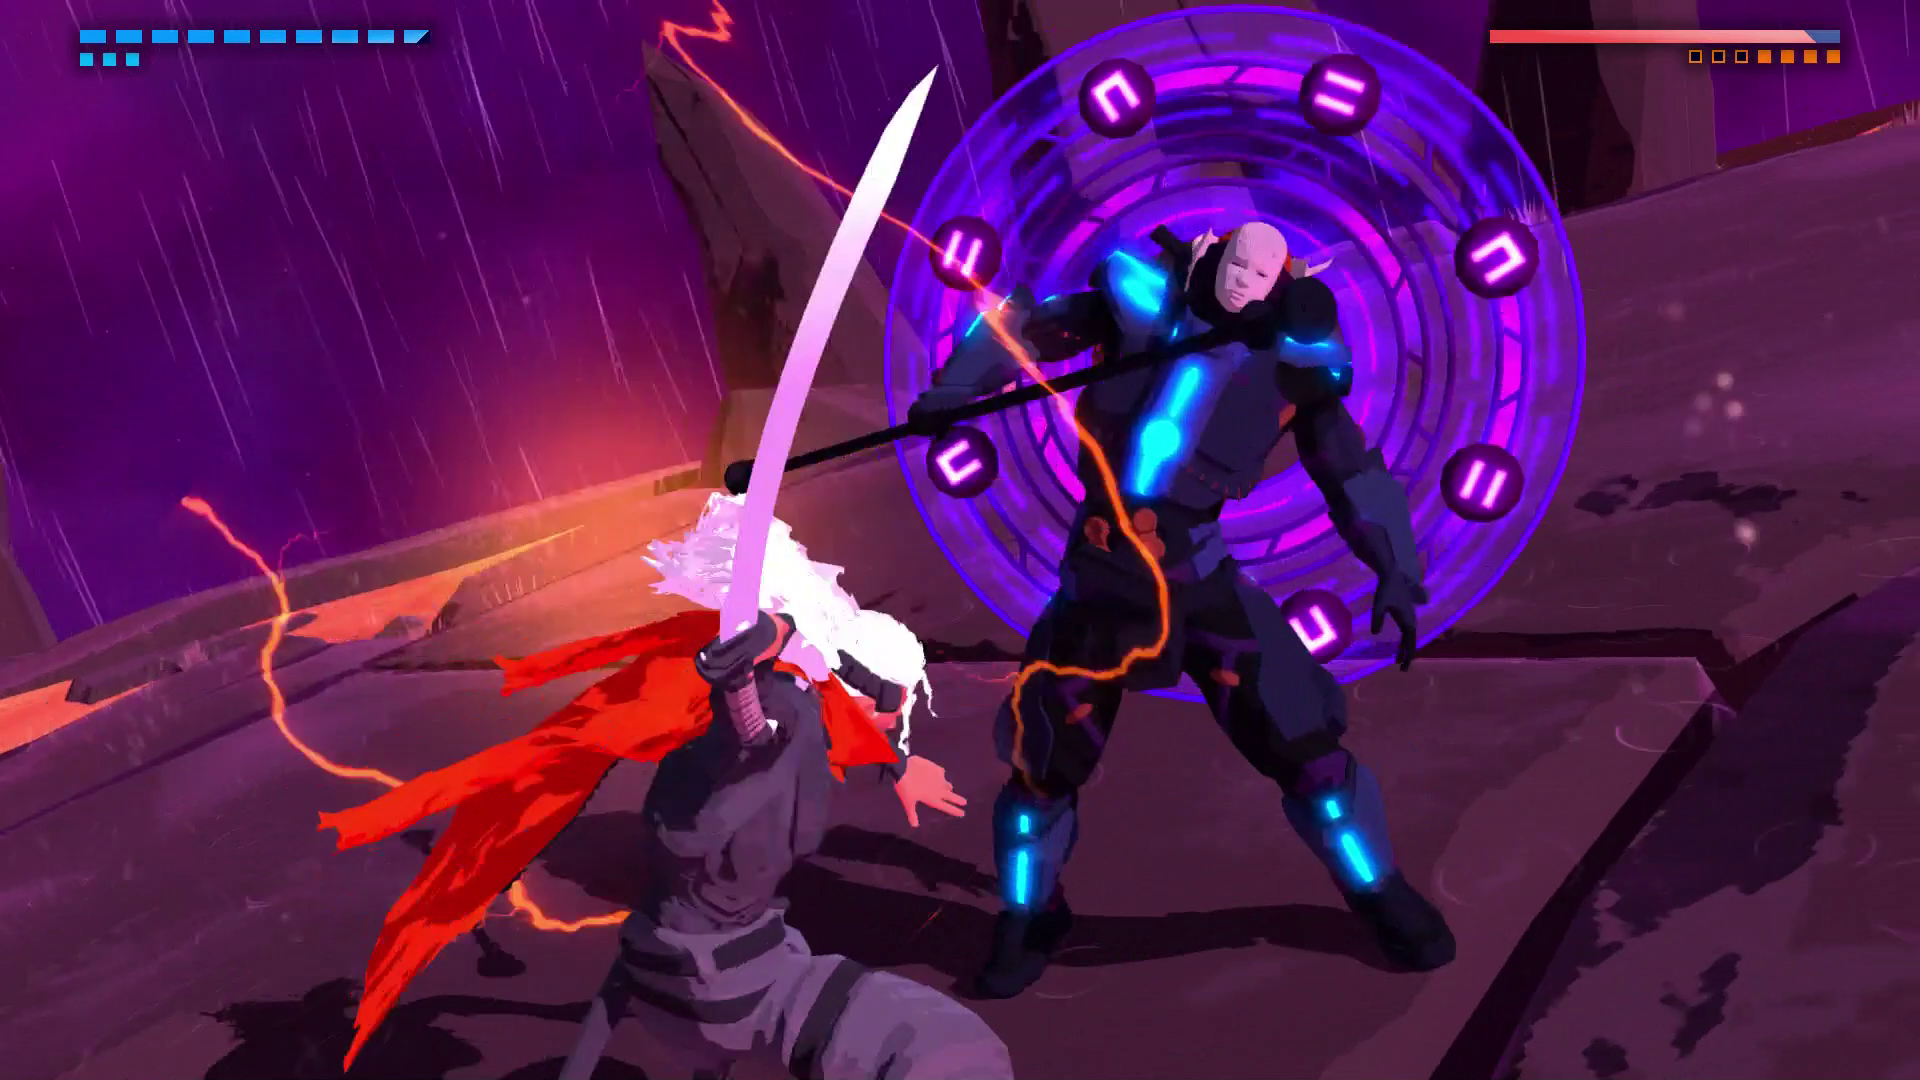 http://www.thegamebakers.com/wp-content/uploads/2016/05/02_Furi_Demo_Closecombat.png